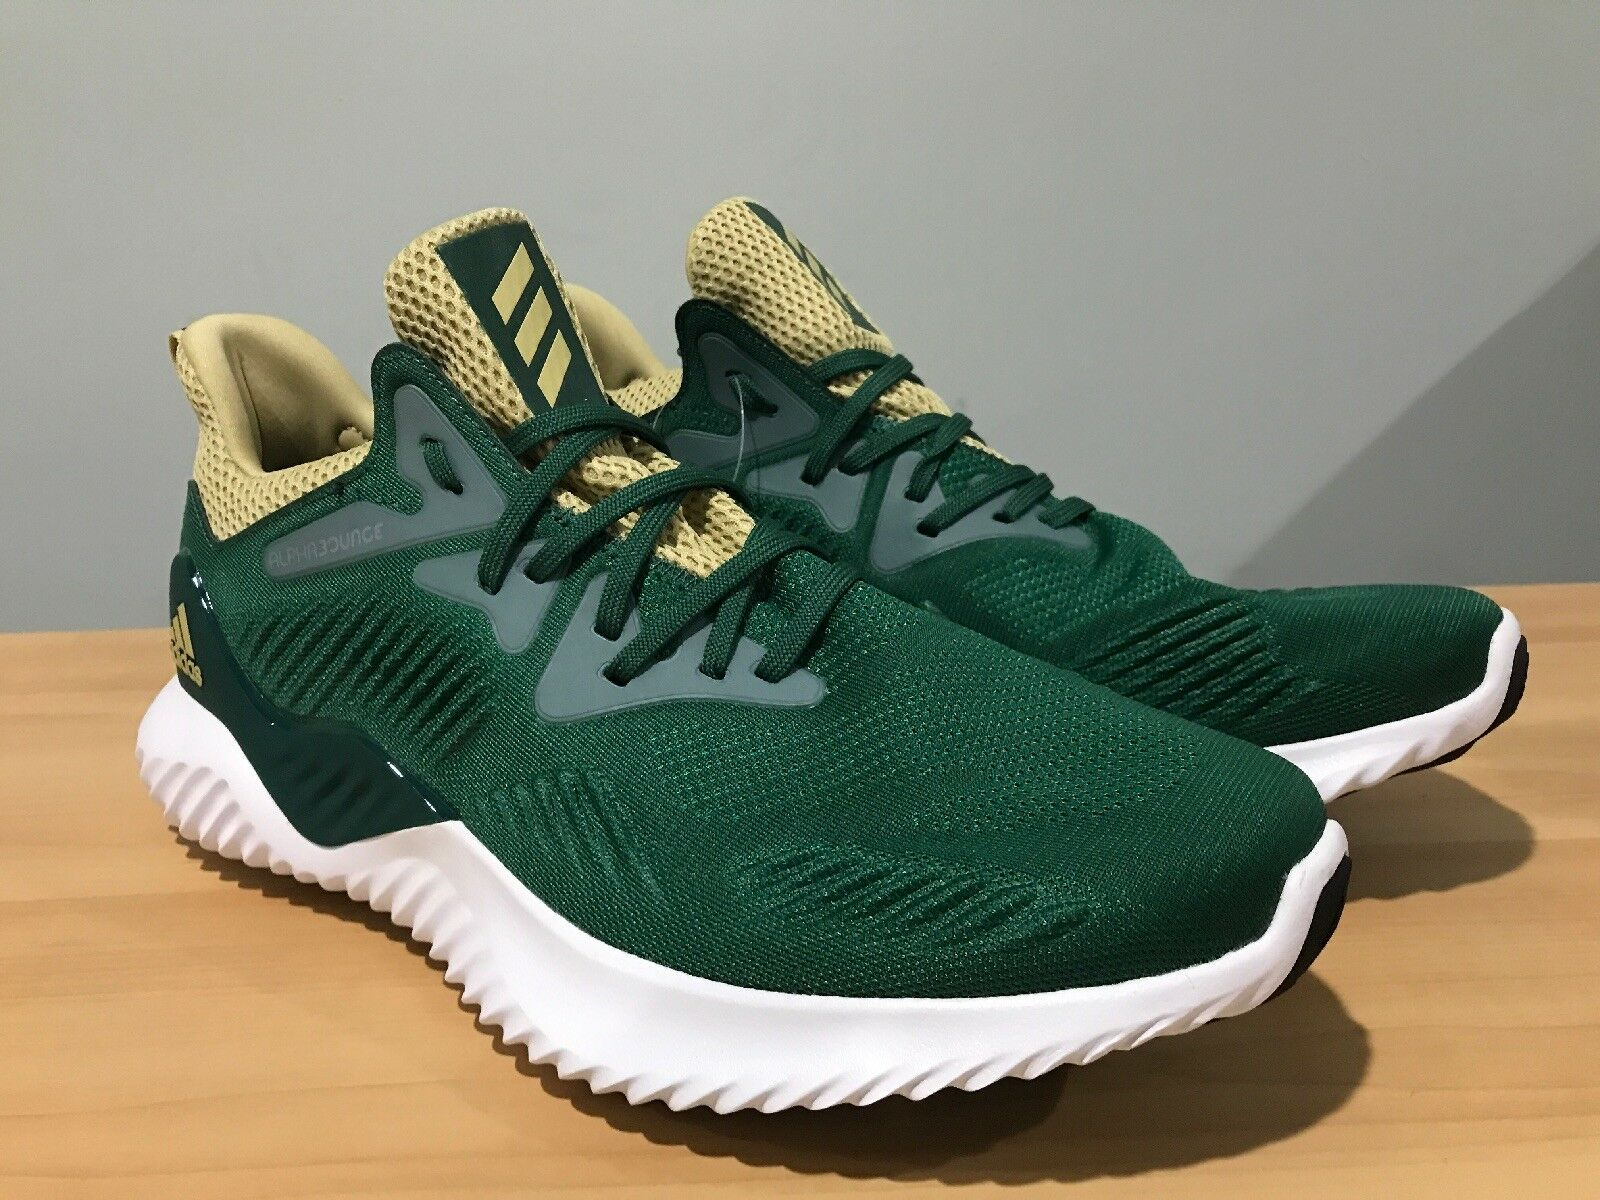 Adidas Men's Alphabounce Beyond NCAA Notre Dame Running shoes Size 9.5 F36828